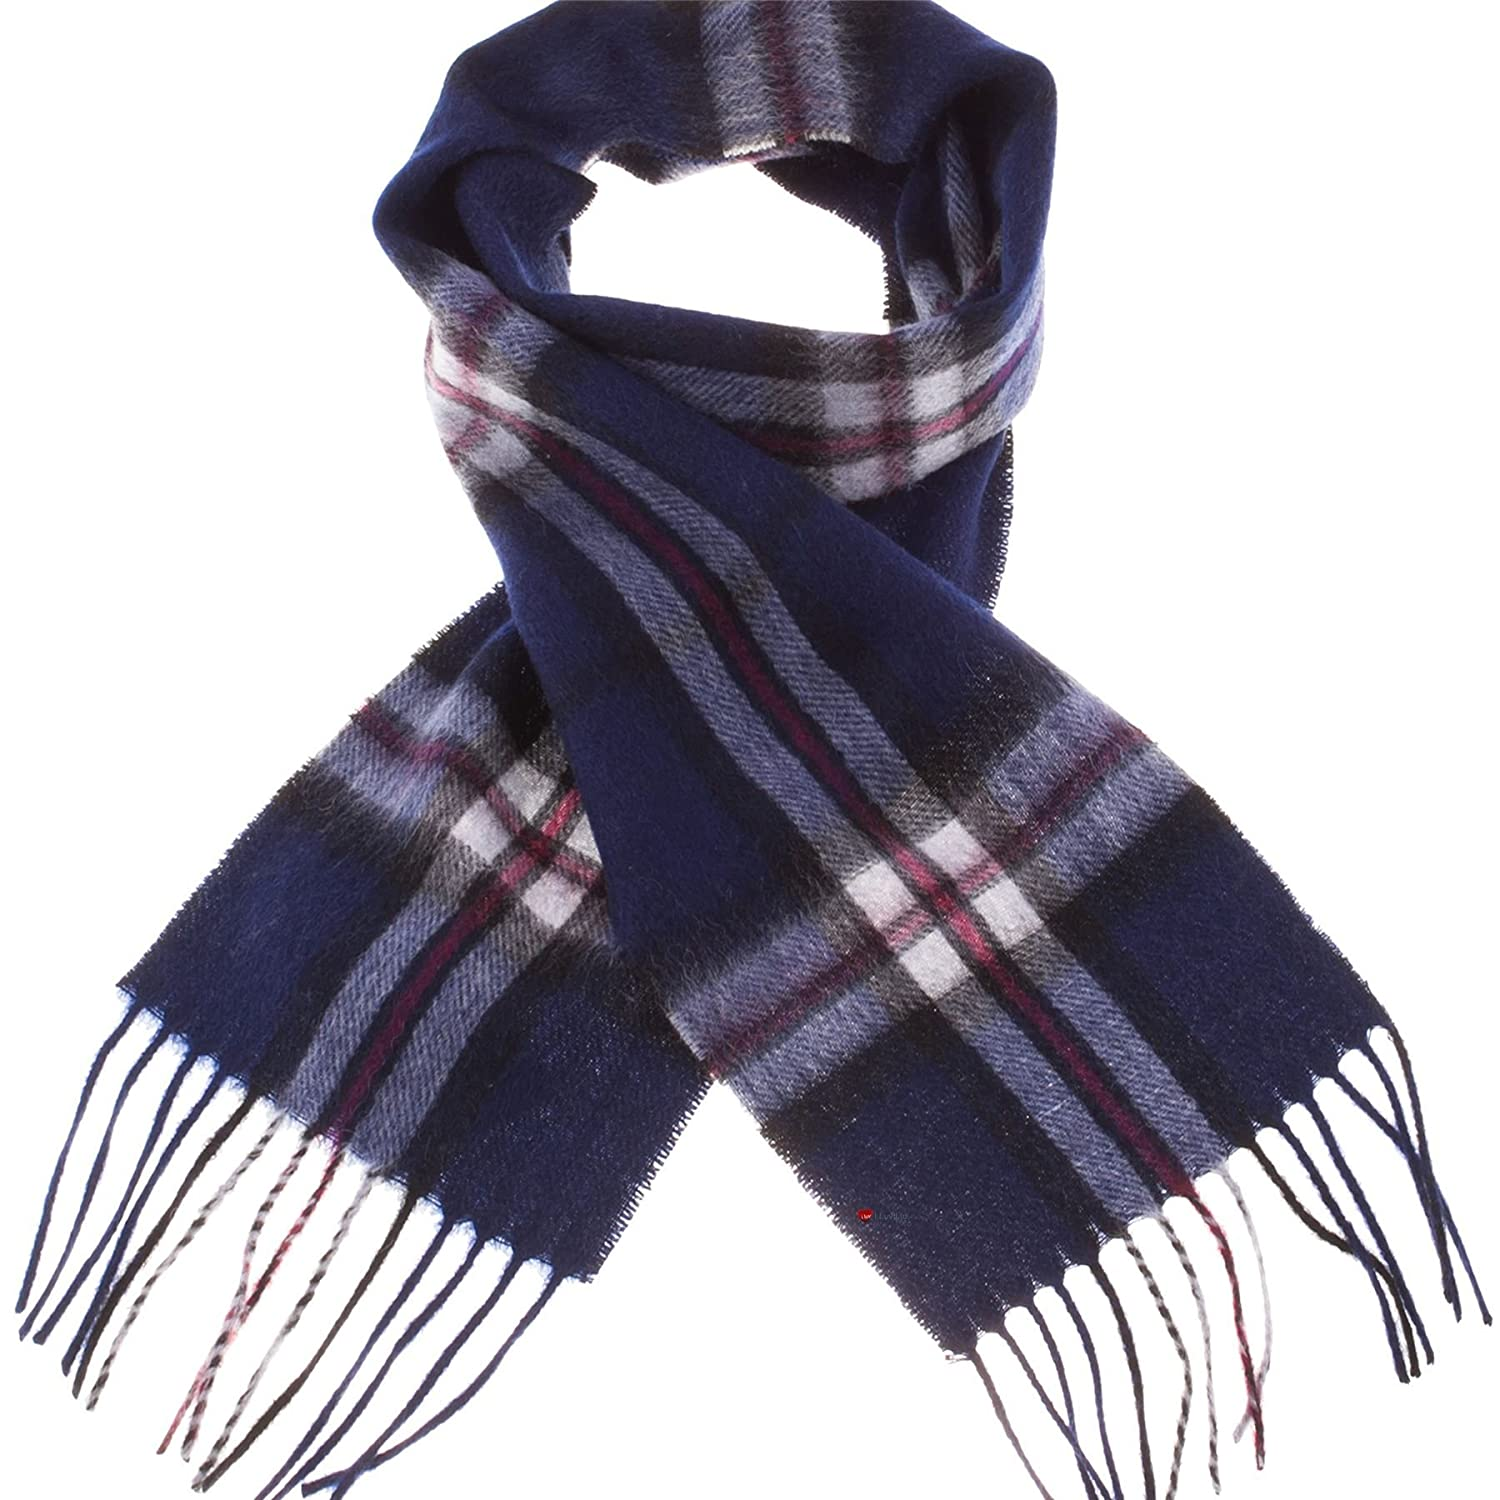 Deluxe Edinburgh Kids 100/% Lambswool Scarf Thomson Navy Childs Soft and Warm Gift from Scotland